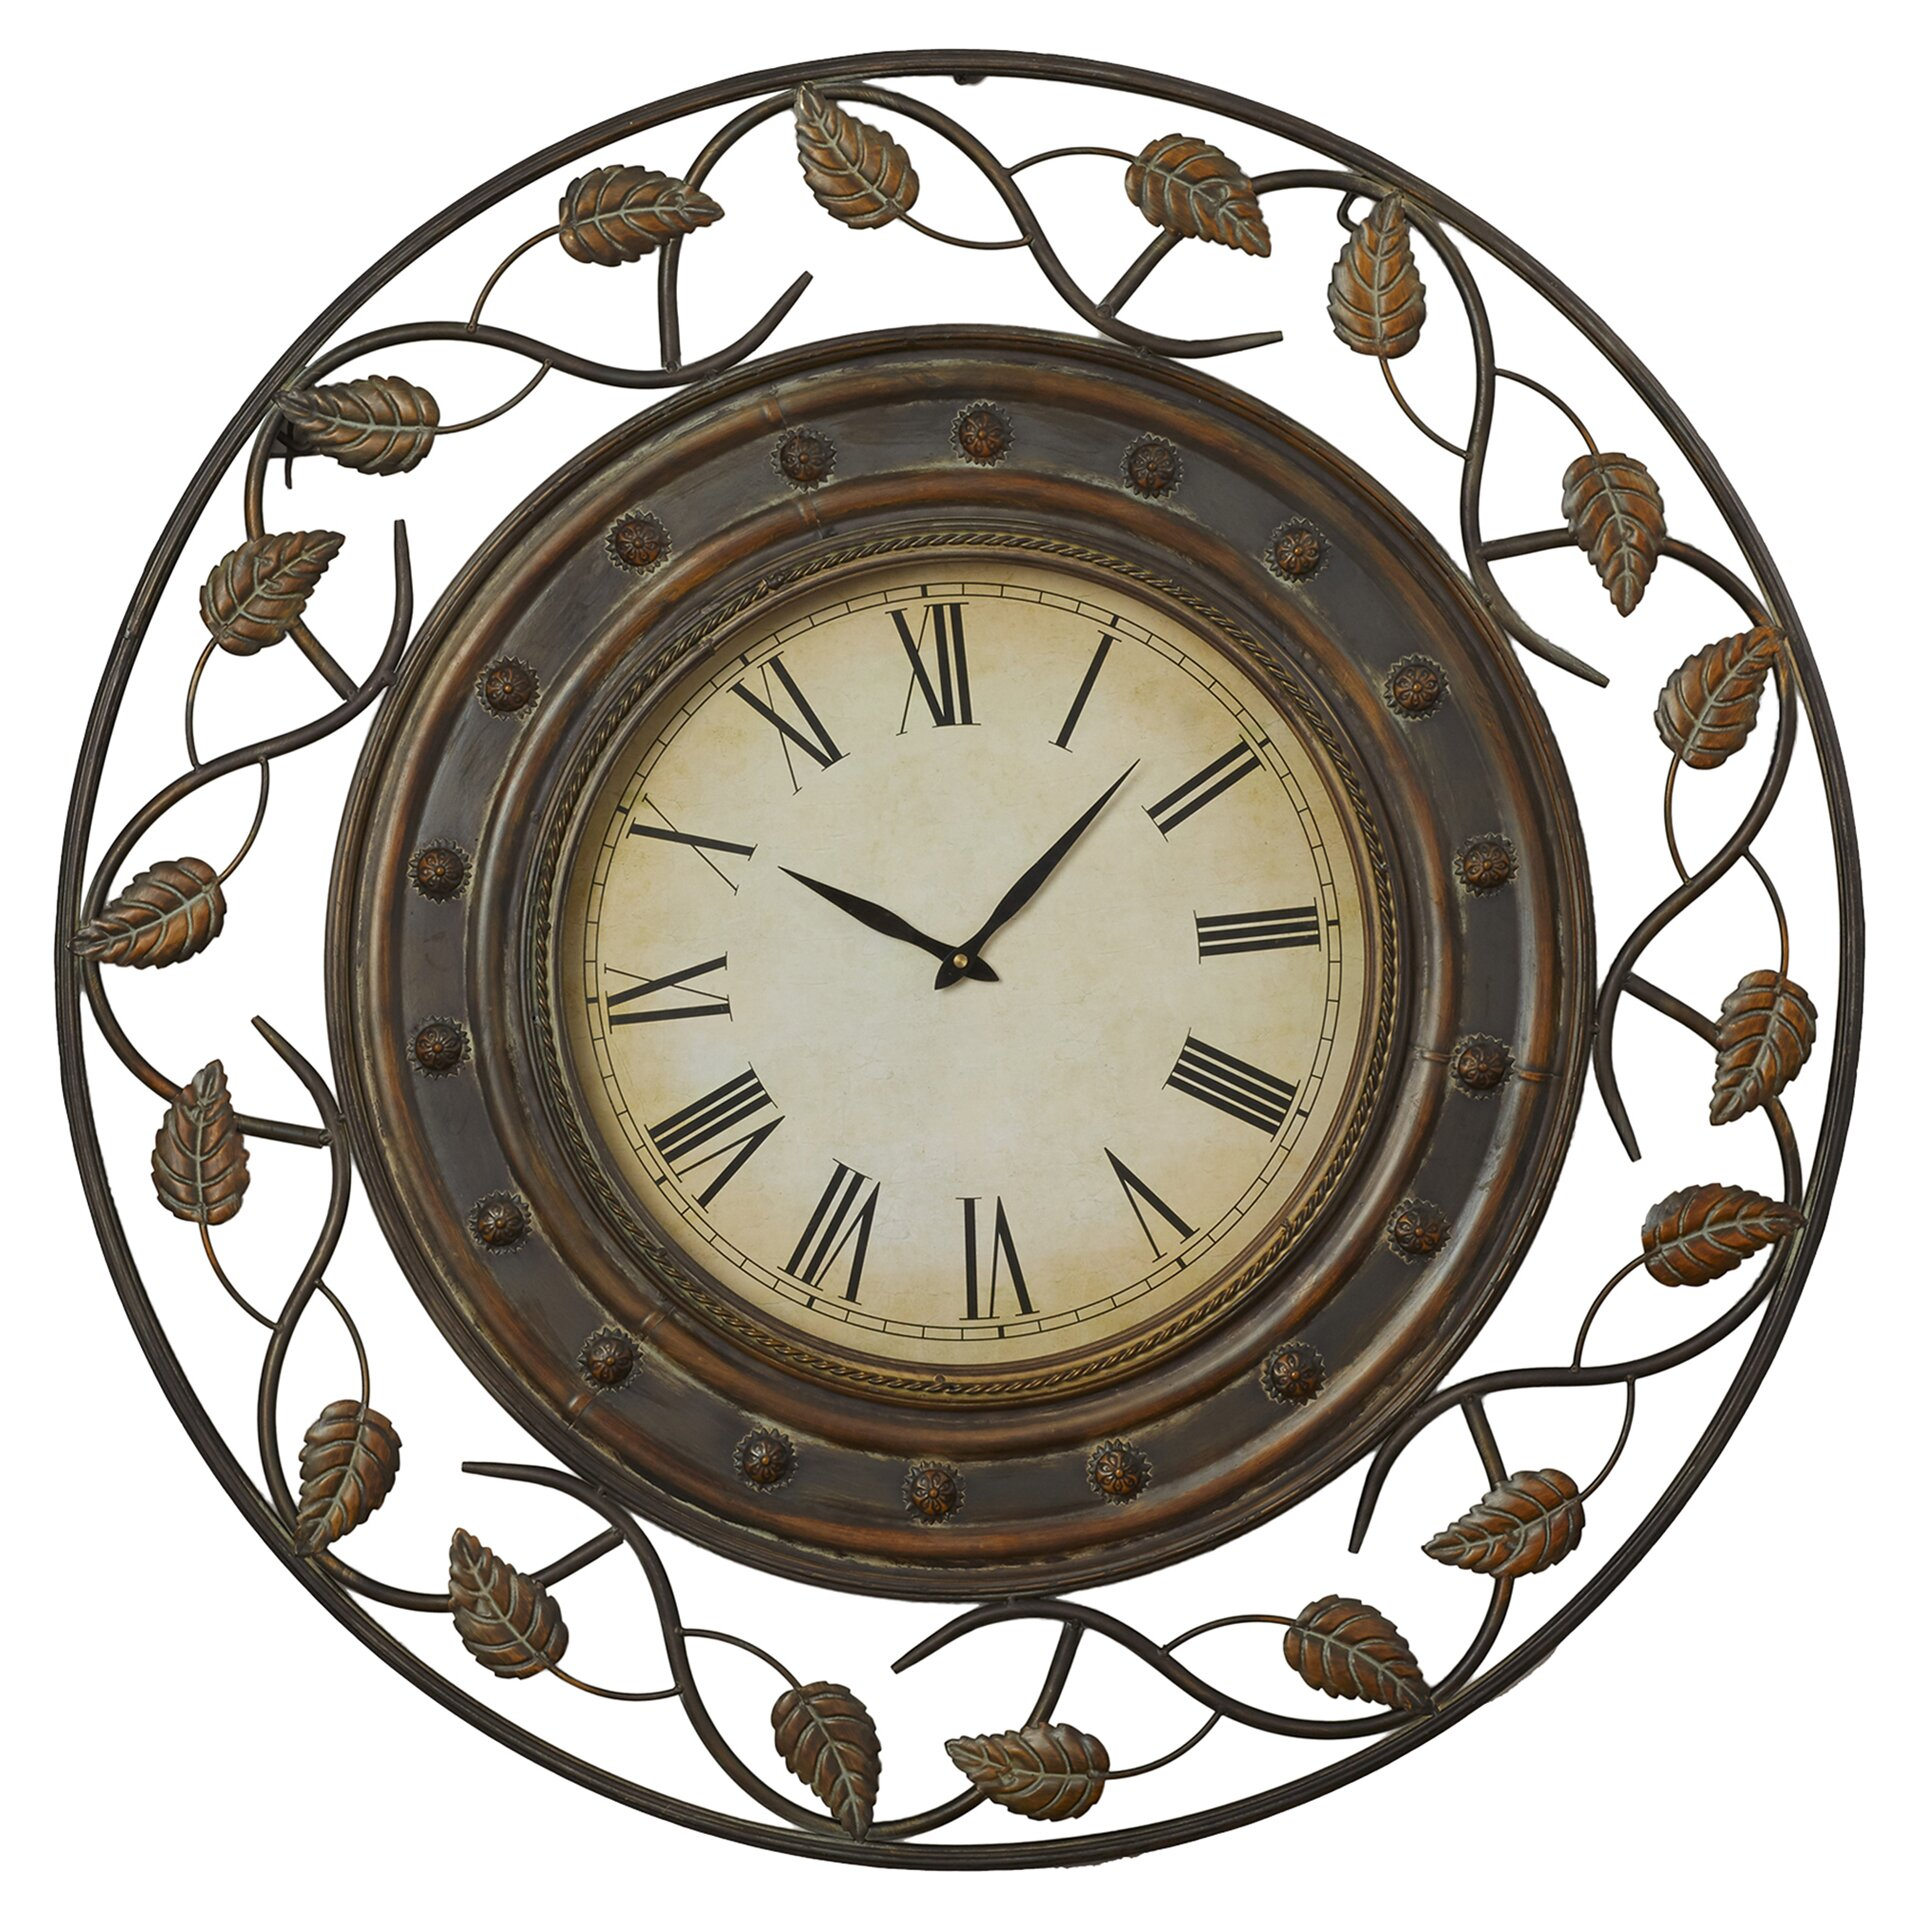 36 wall clock choice image home wall decoration ideas decorative wall clock roselawnlutheran darby home cou0026reg cleffort 36 decorative wall clock amipublicfo choice image amipublicfo Choice Image